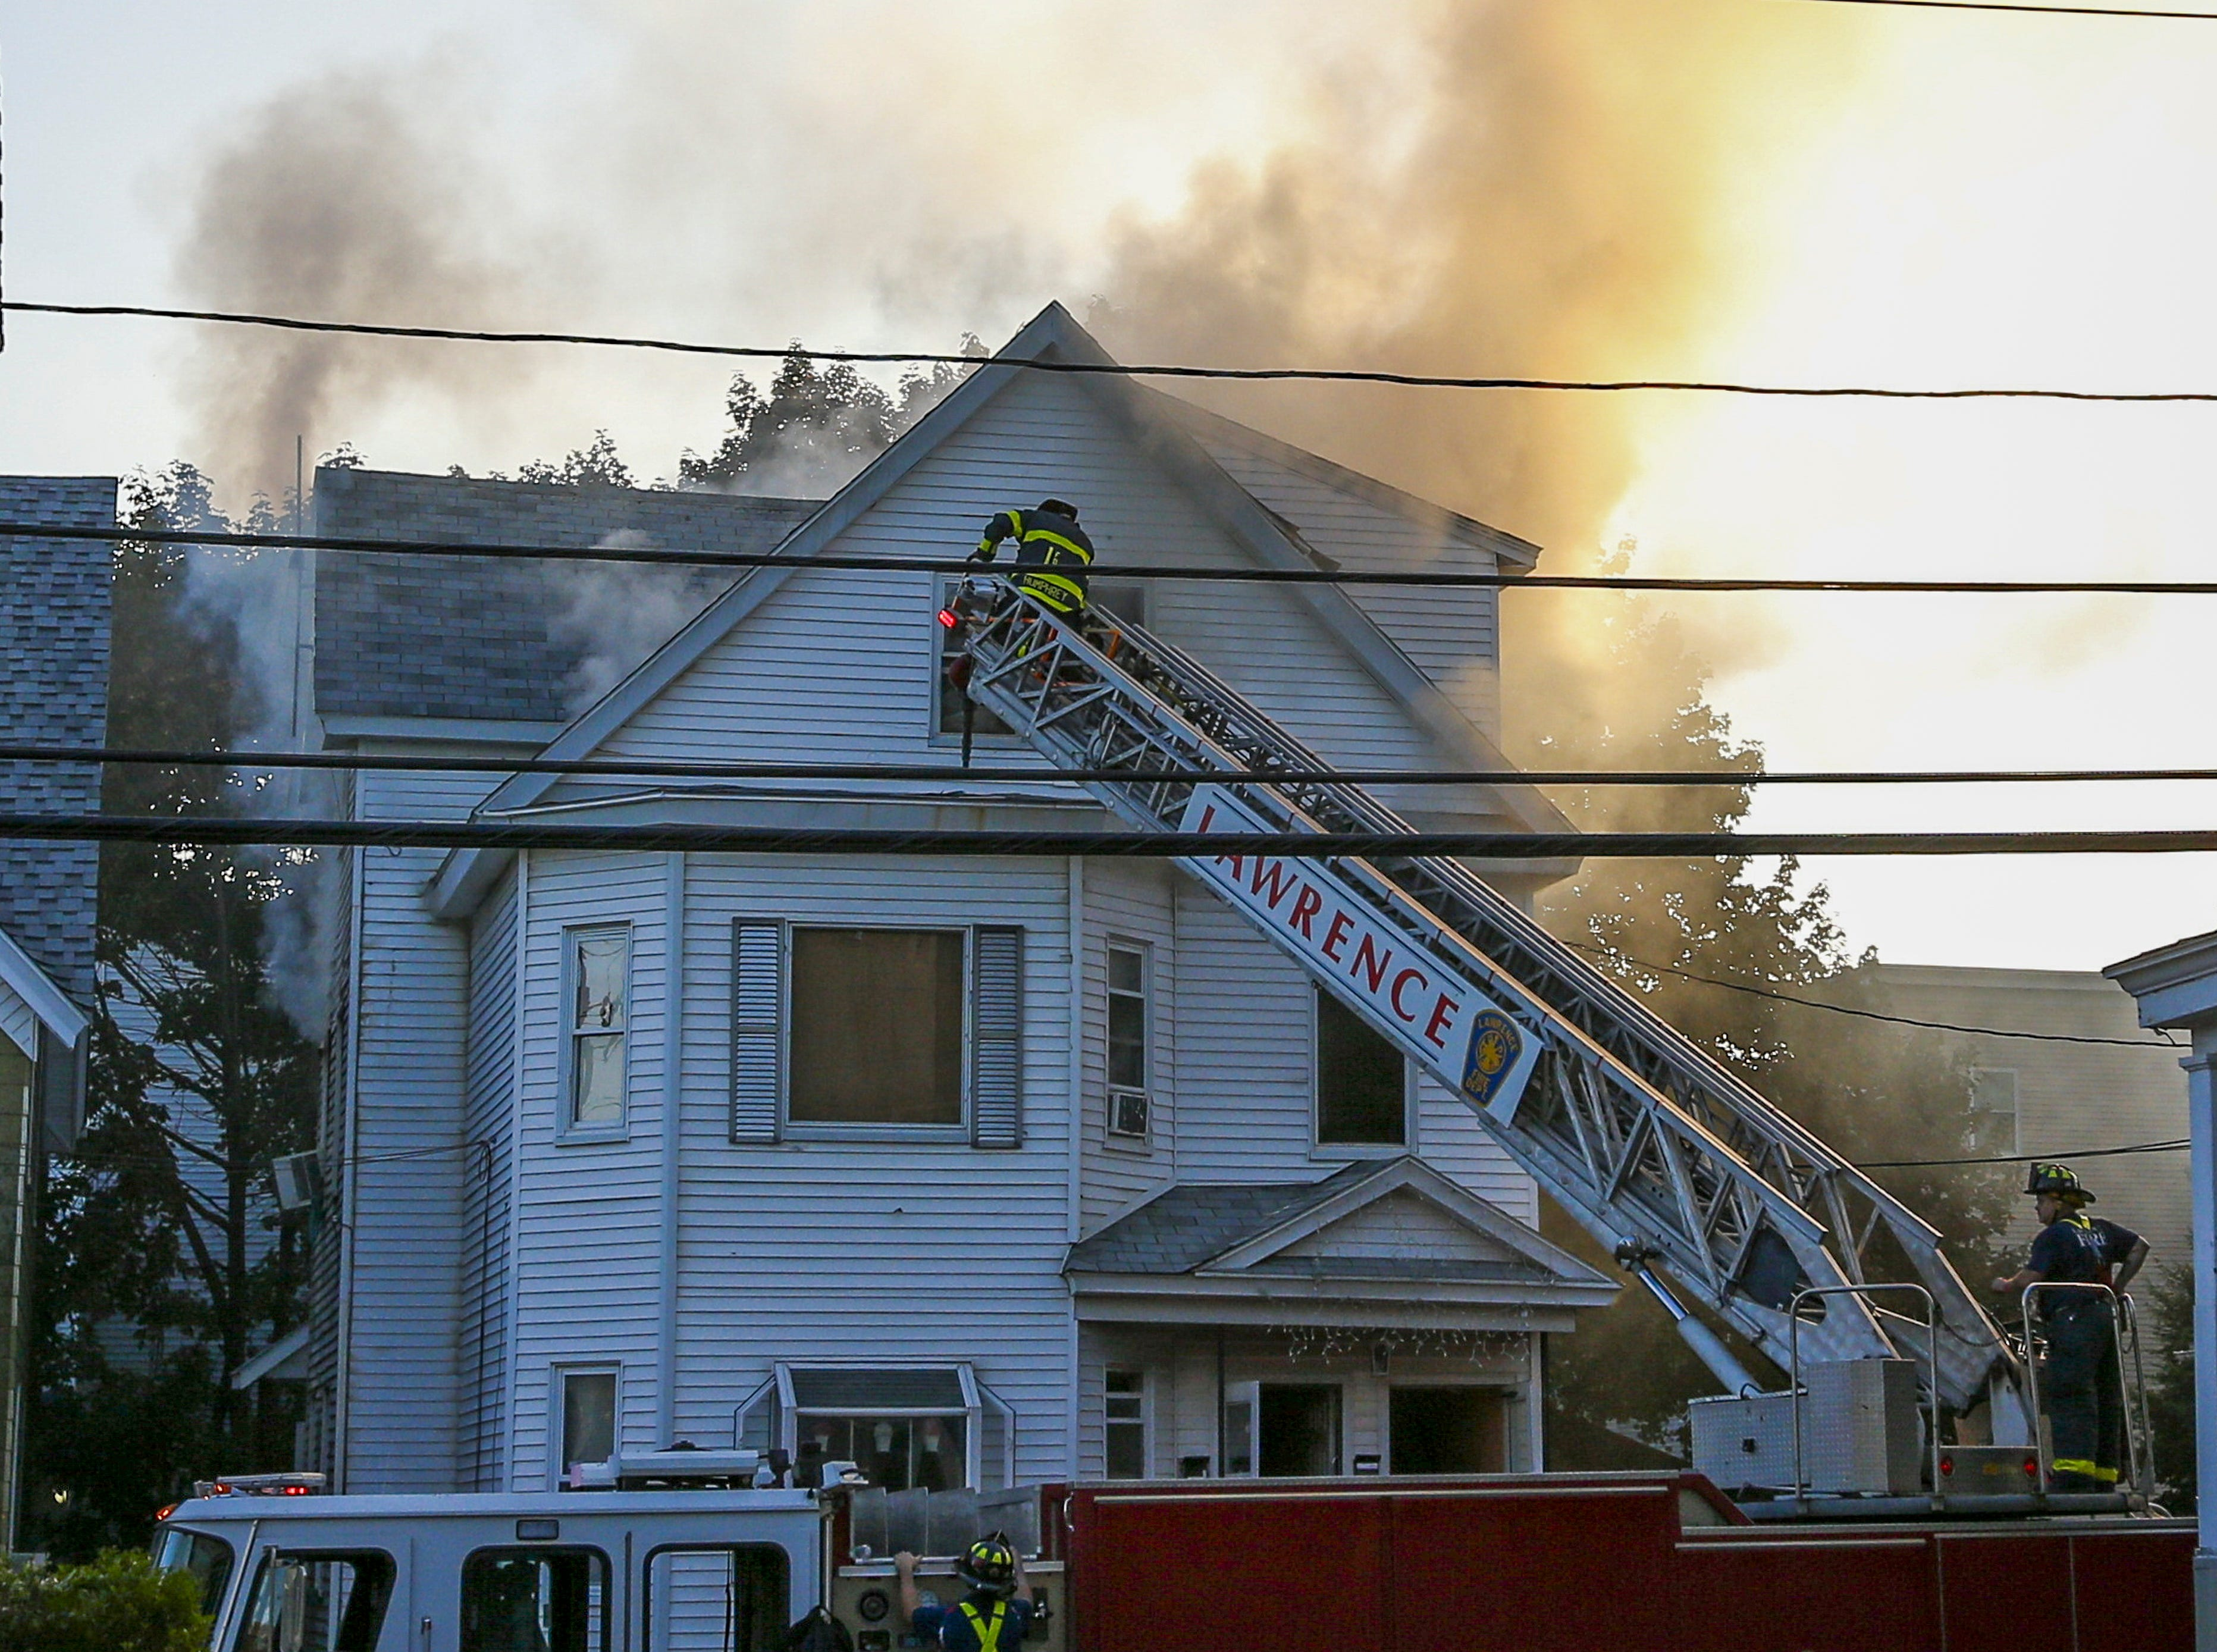 epa07018424 Firefighters battle blazes in a house in Lawrence, Massachusetts, USA, 13 September 2018. A series of reported gas explosions in towns north of Boston Massachusetts set at least 39 homes ablaze and forced mandatory evacuation for residents.